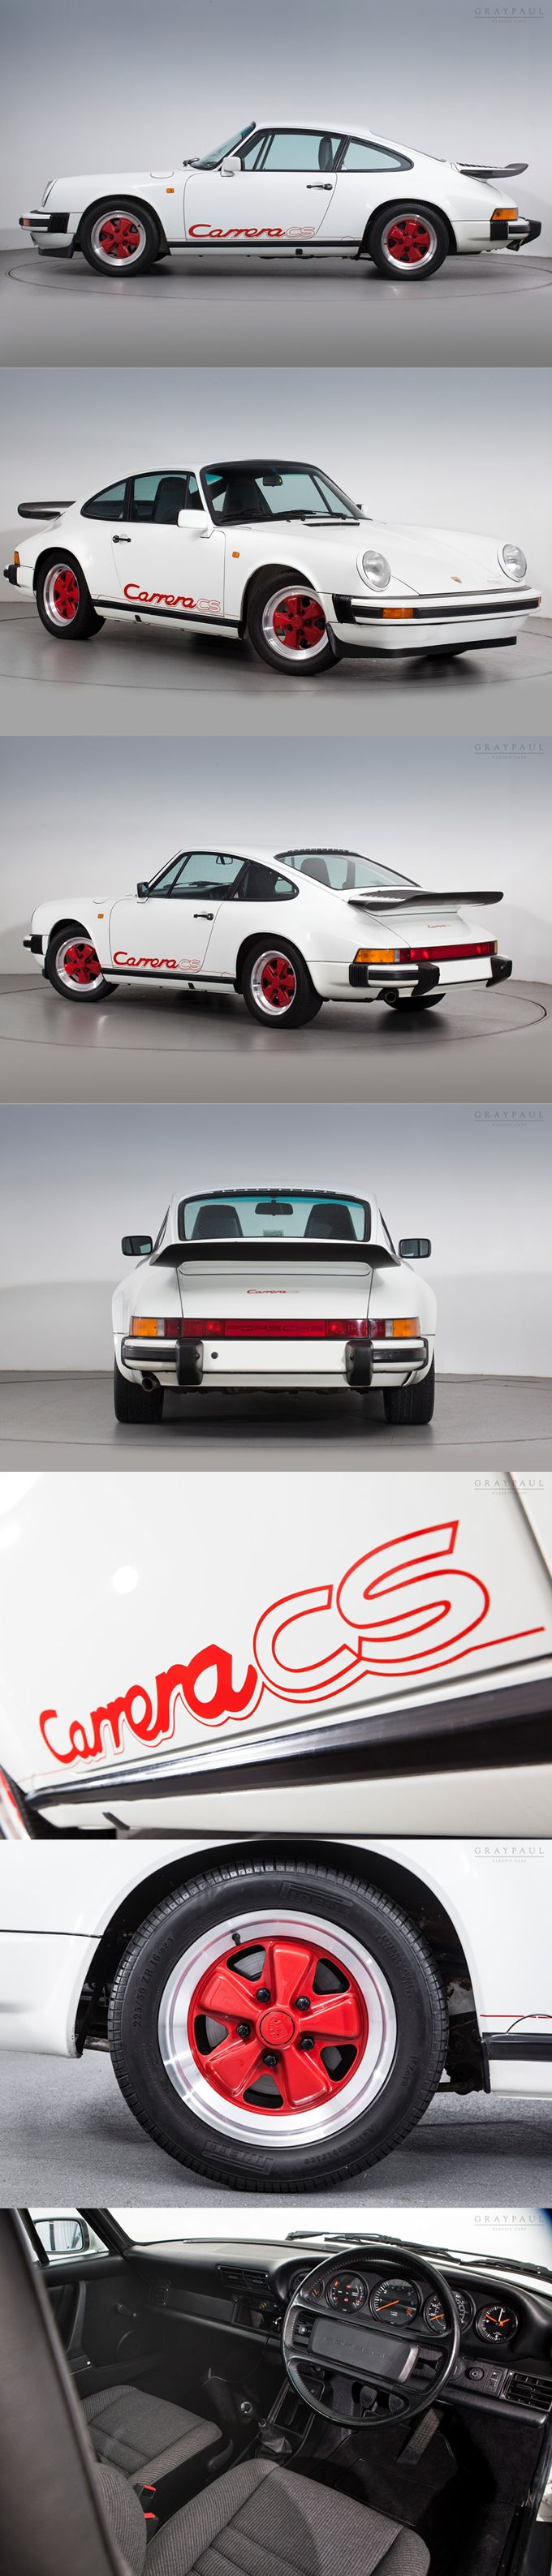 1987 Porsche 911 Carrera CS / Germany / Club Sport / red white / 340 manufactured / 16-79